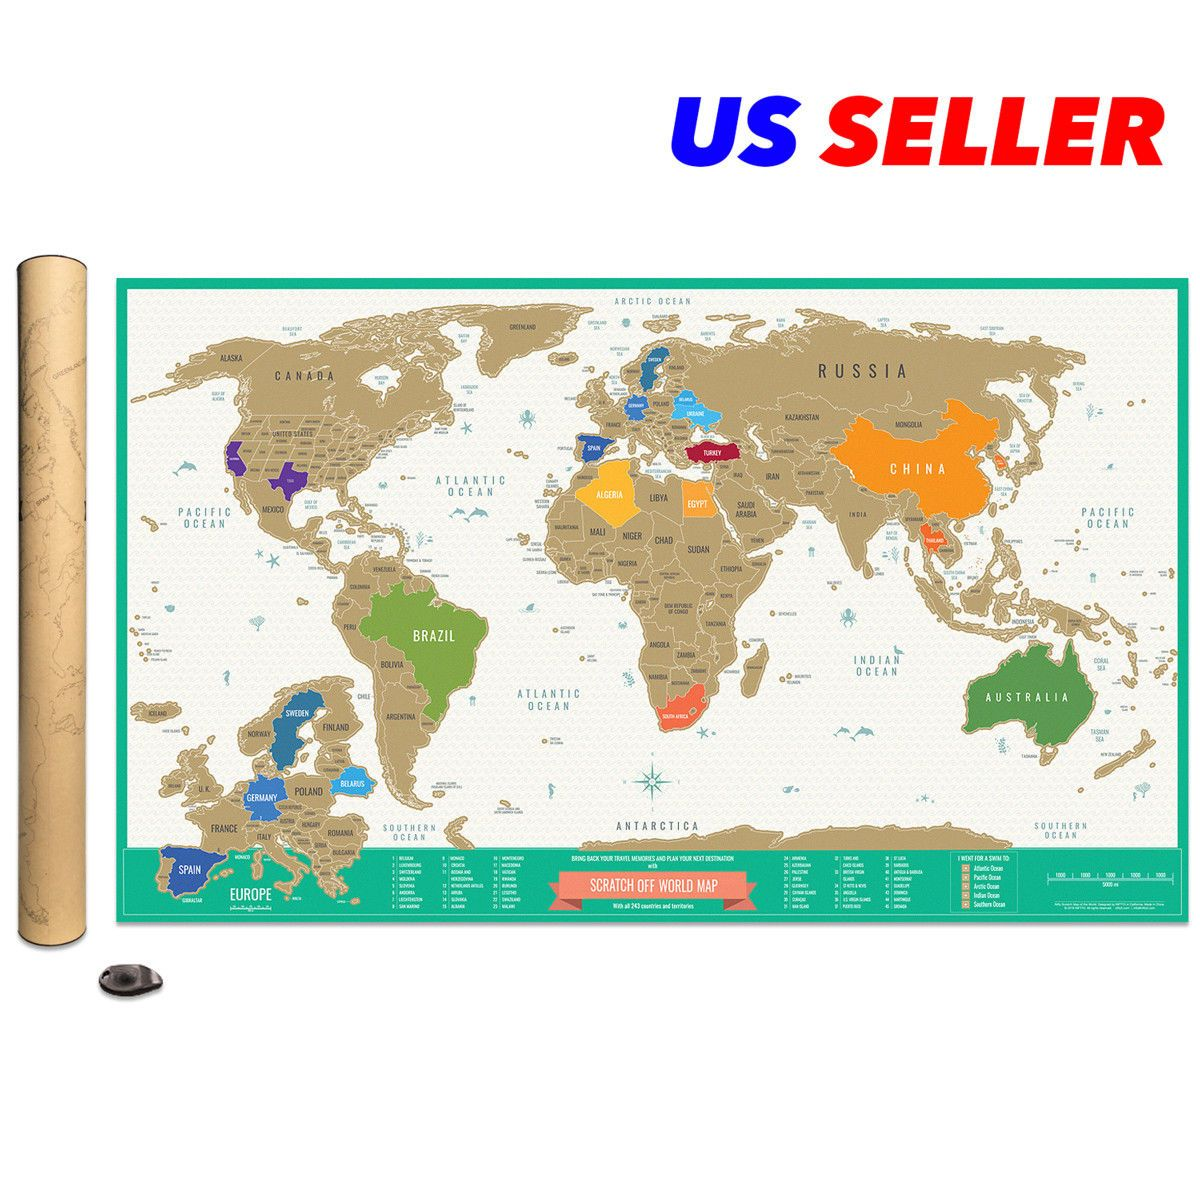 Deluxe scratch off travel tracker world map detailed usa and europe deluxe scratch off travel tracker world map detailed usa and europe gift package 112568714525 for 1595 gumiabroncs Image collections